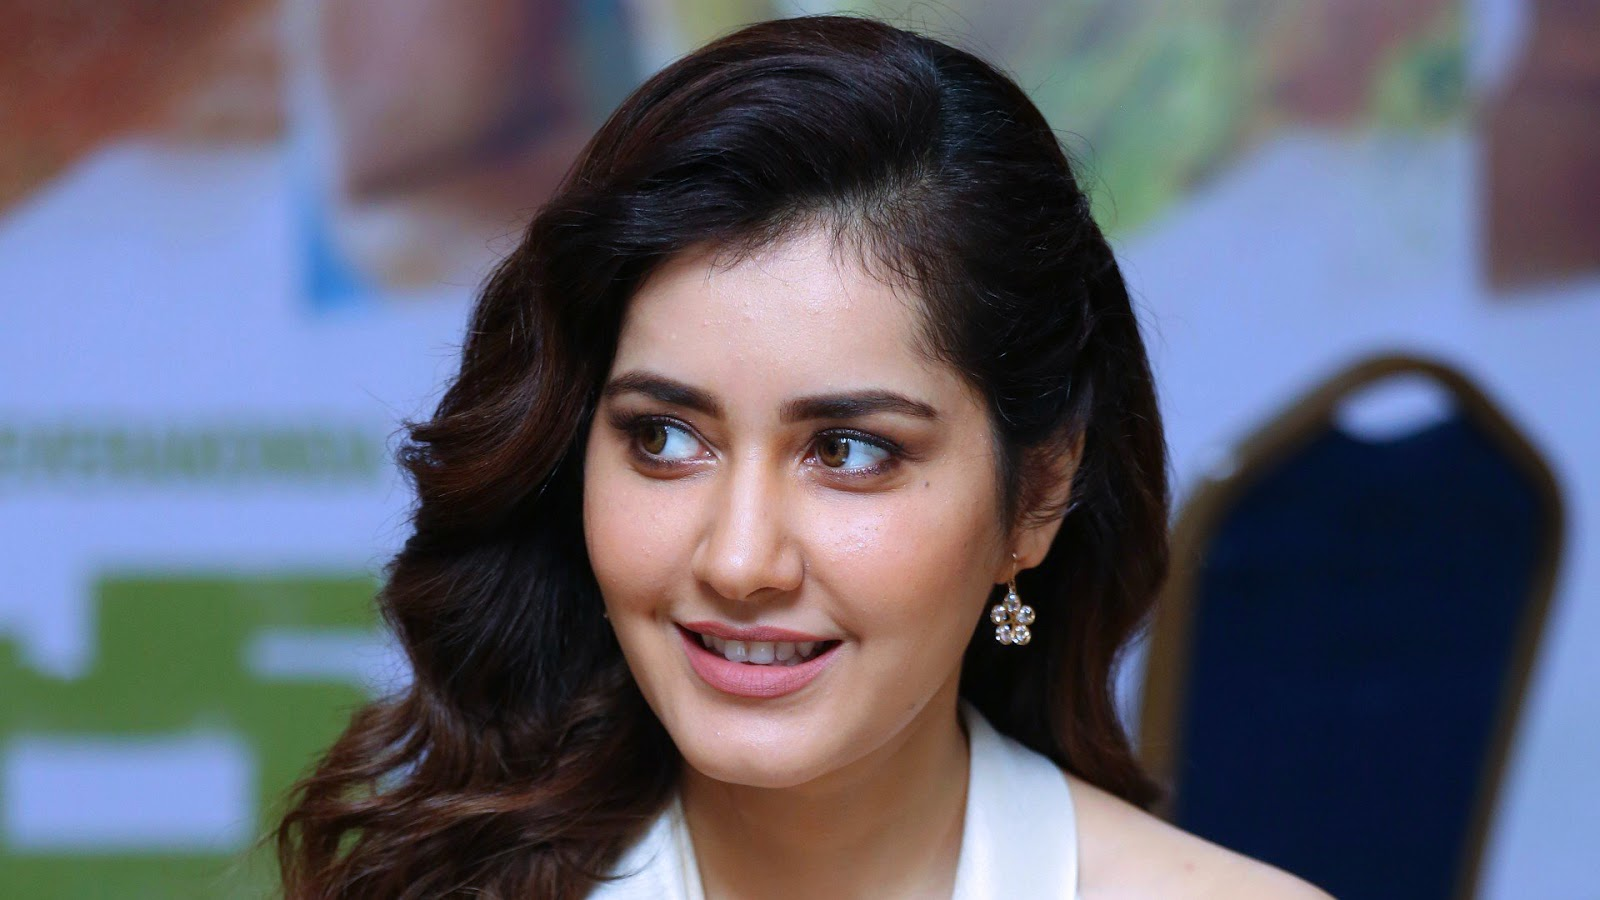 Raashi Khanna's Super Cute Close Up Face New Wallpapers 2020